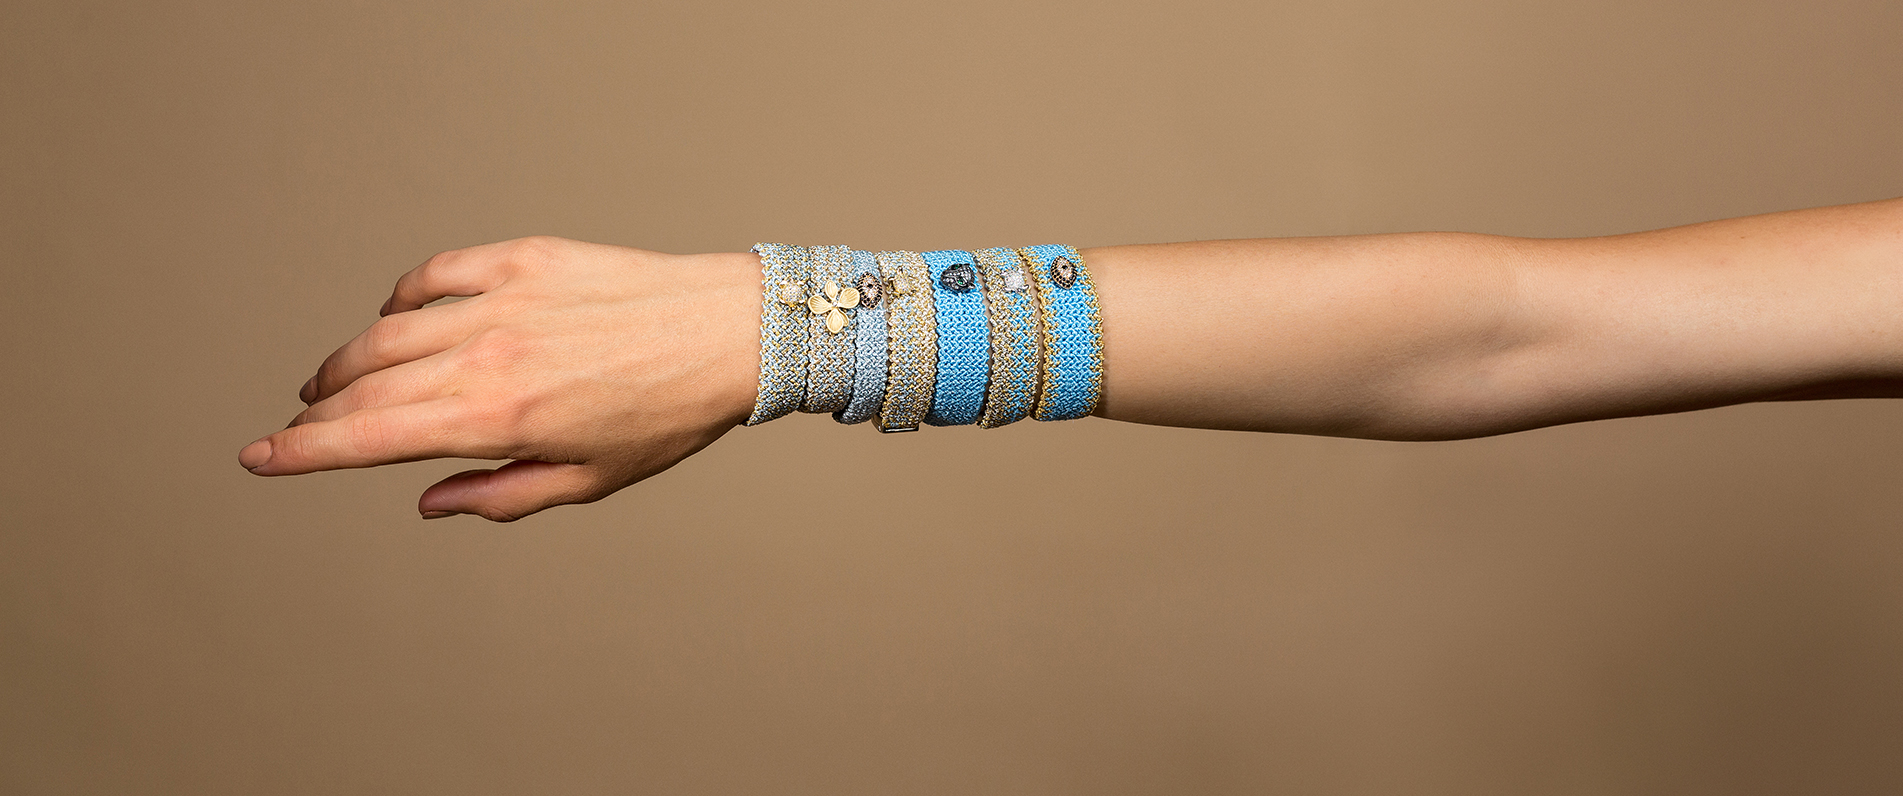 woven bracelets in shades of blue